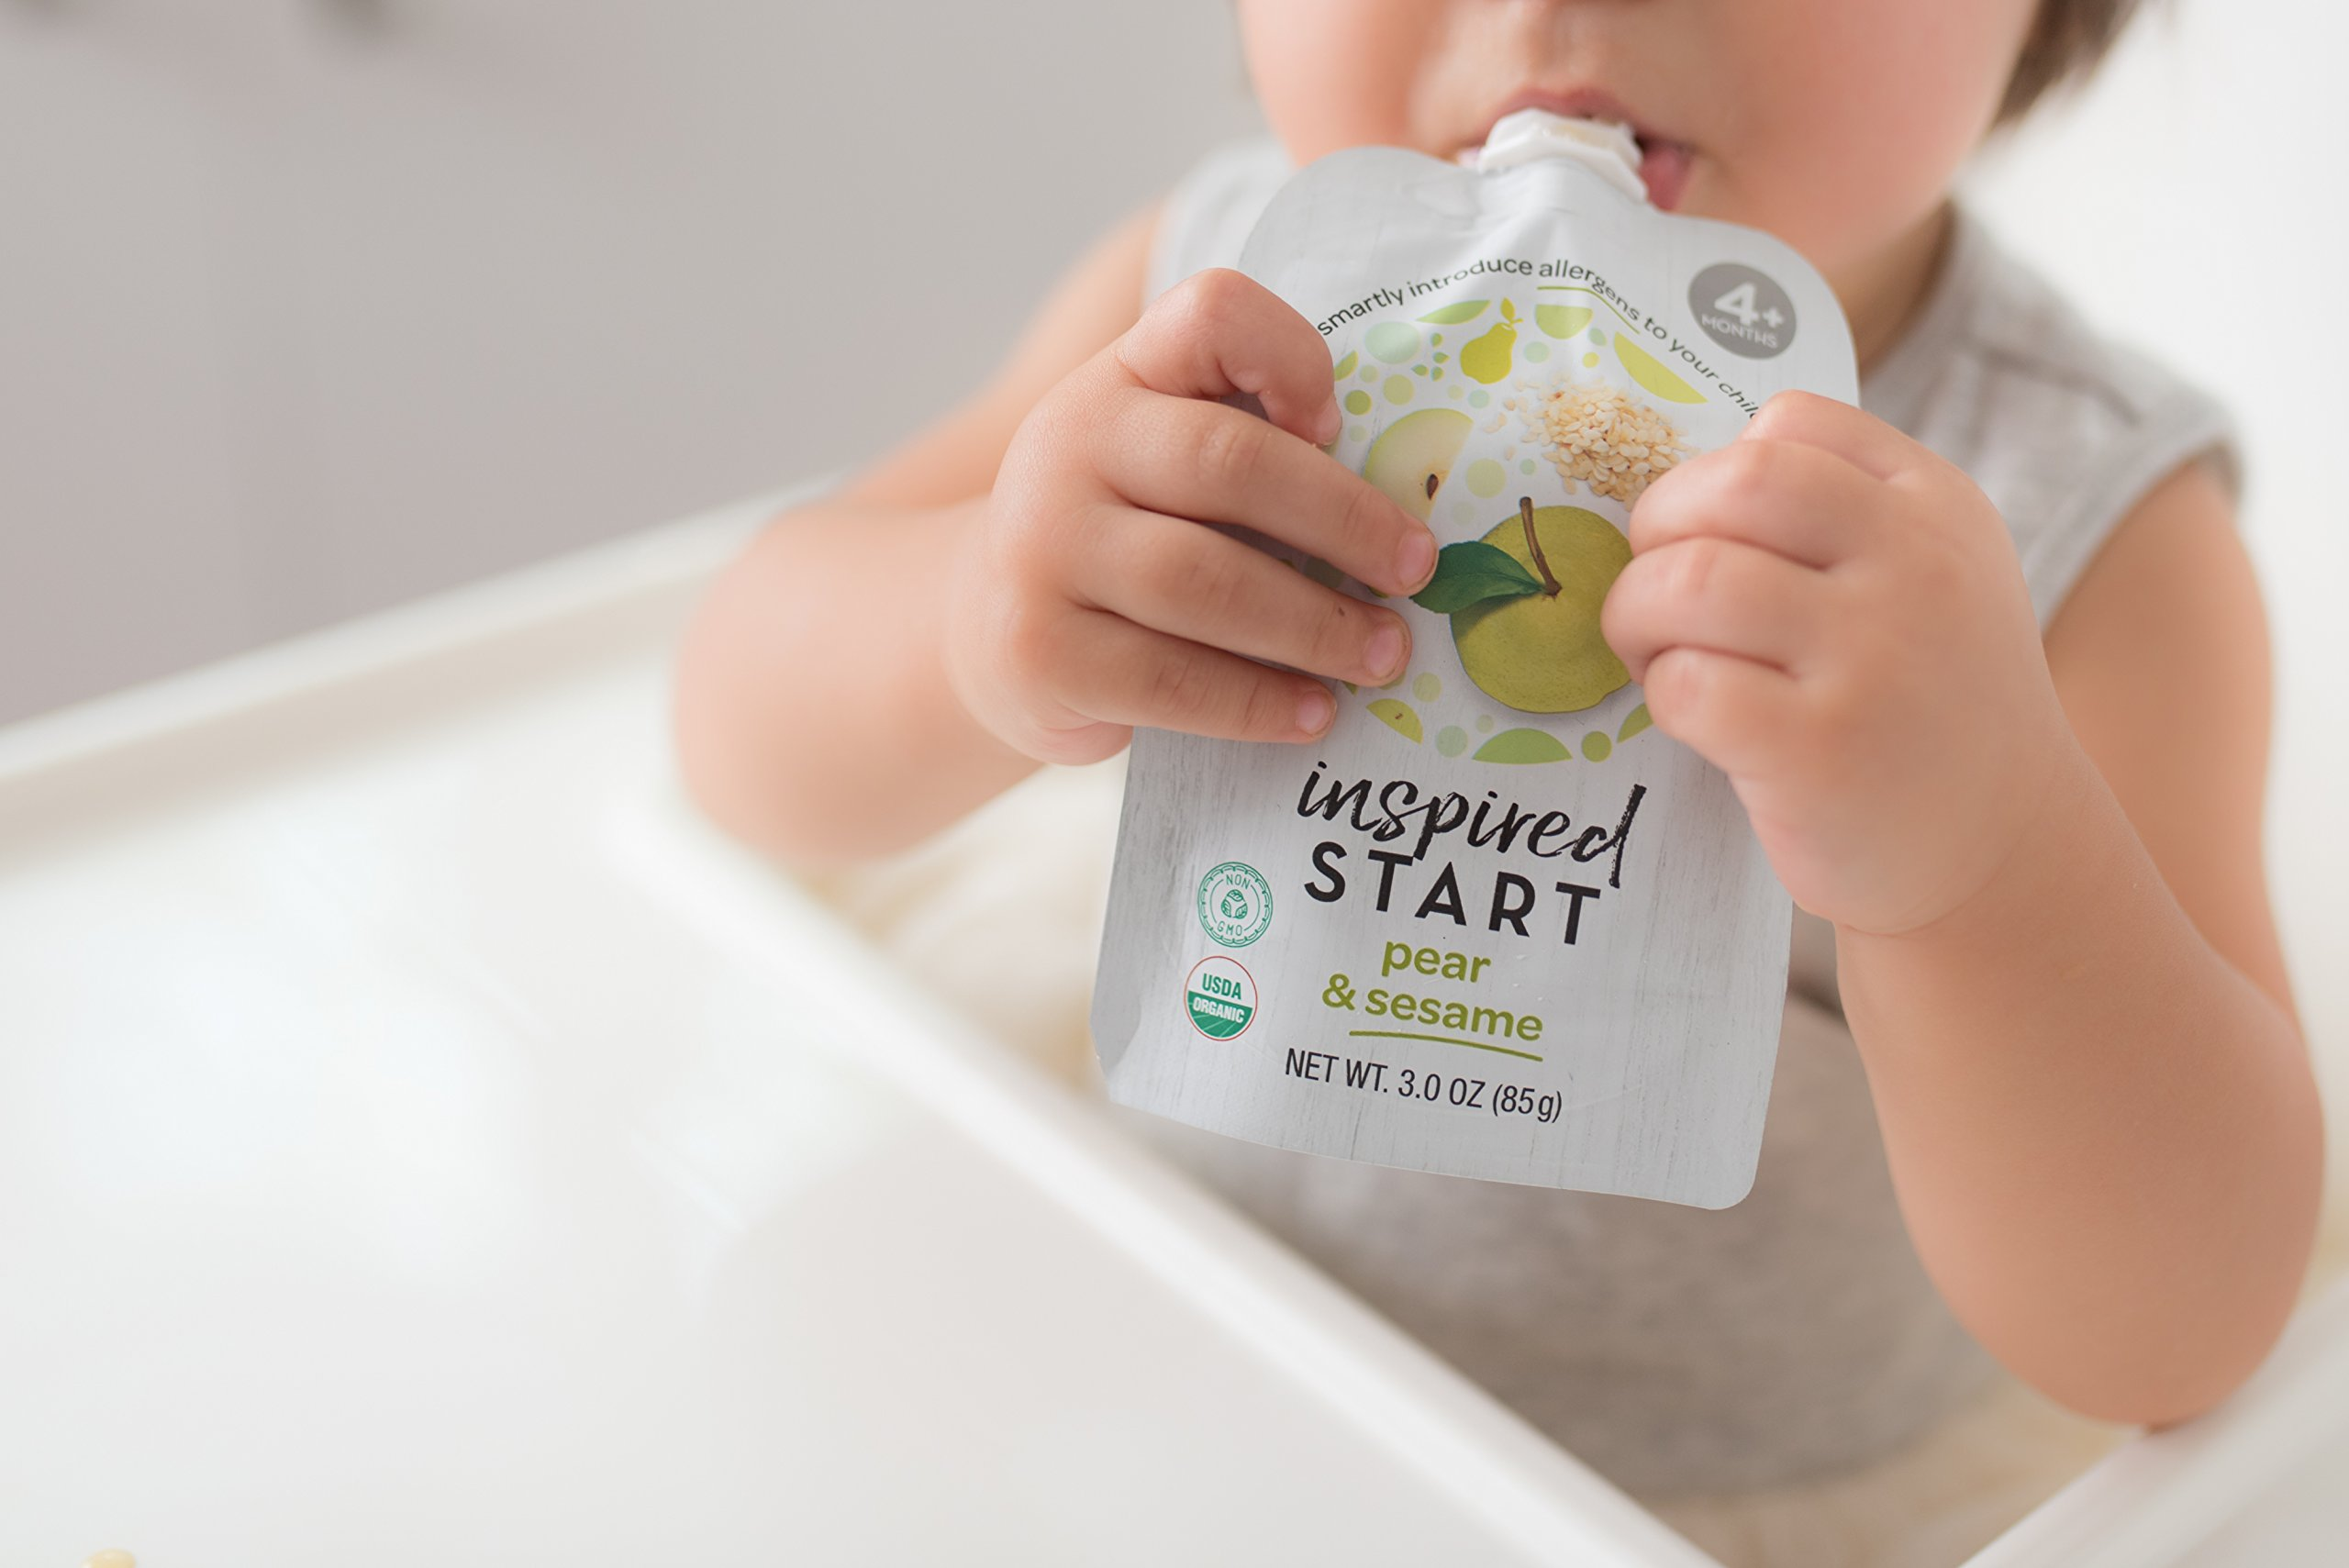 Early Allergen Introduction Baby Food: Inspired Start Pack 2, 3 oz. (Pack of 8 baby food pouches) - Non-GMO, include wheat, sesame, shrimp and cod in baby's diet by Inspired Start (Image #6)